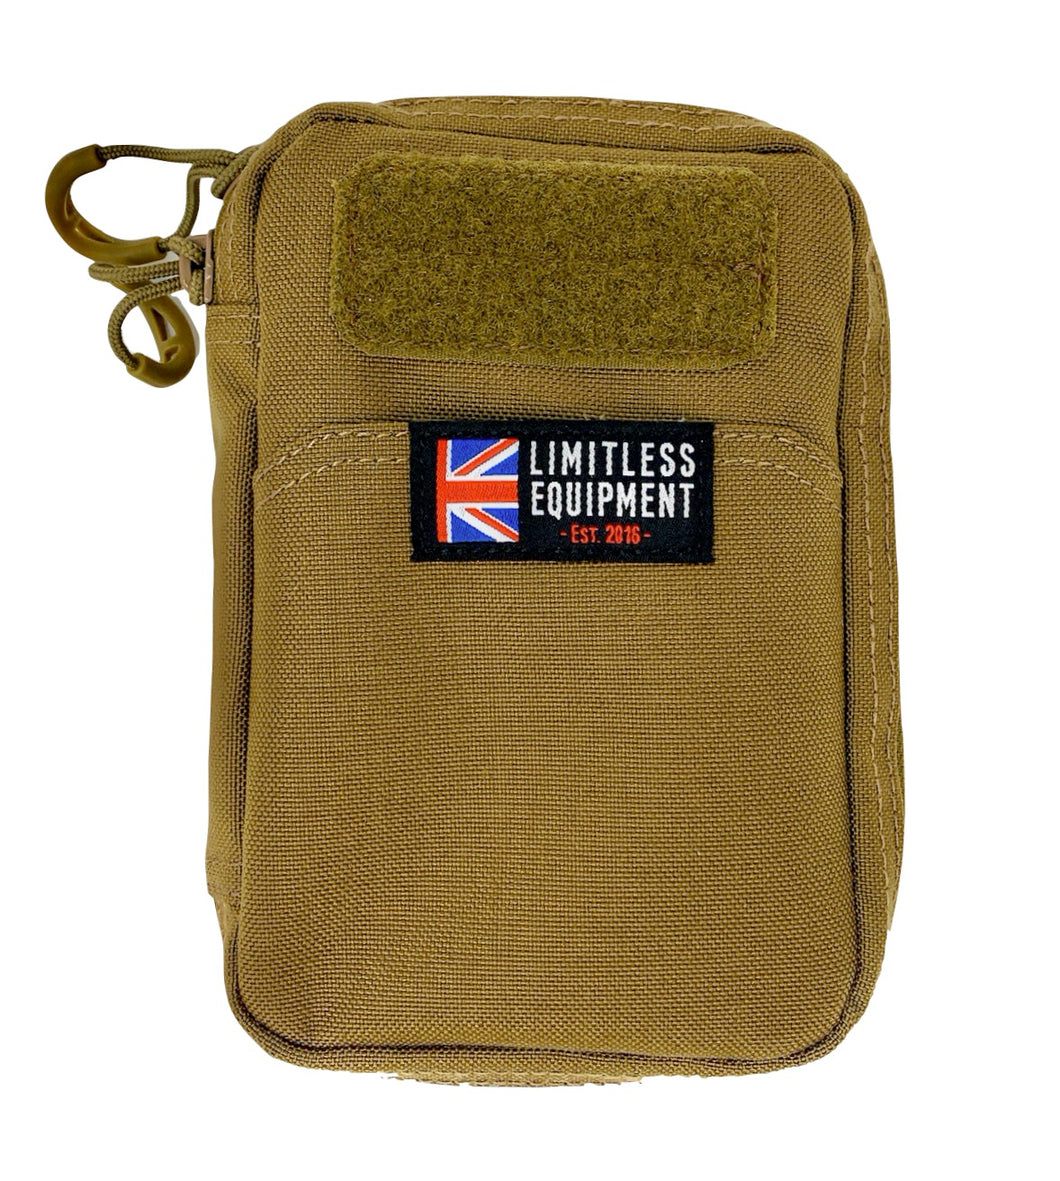 Limitless Equipment AFAK-XS Individual First Aid Kit (IFAK) - Limitless Equipment